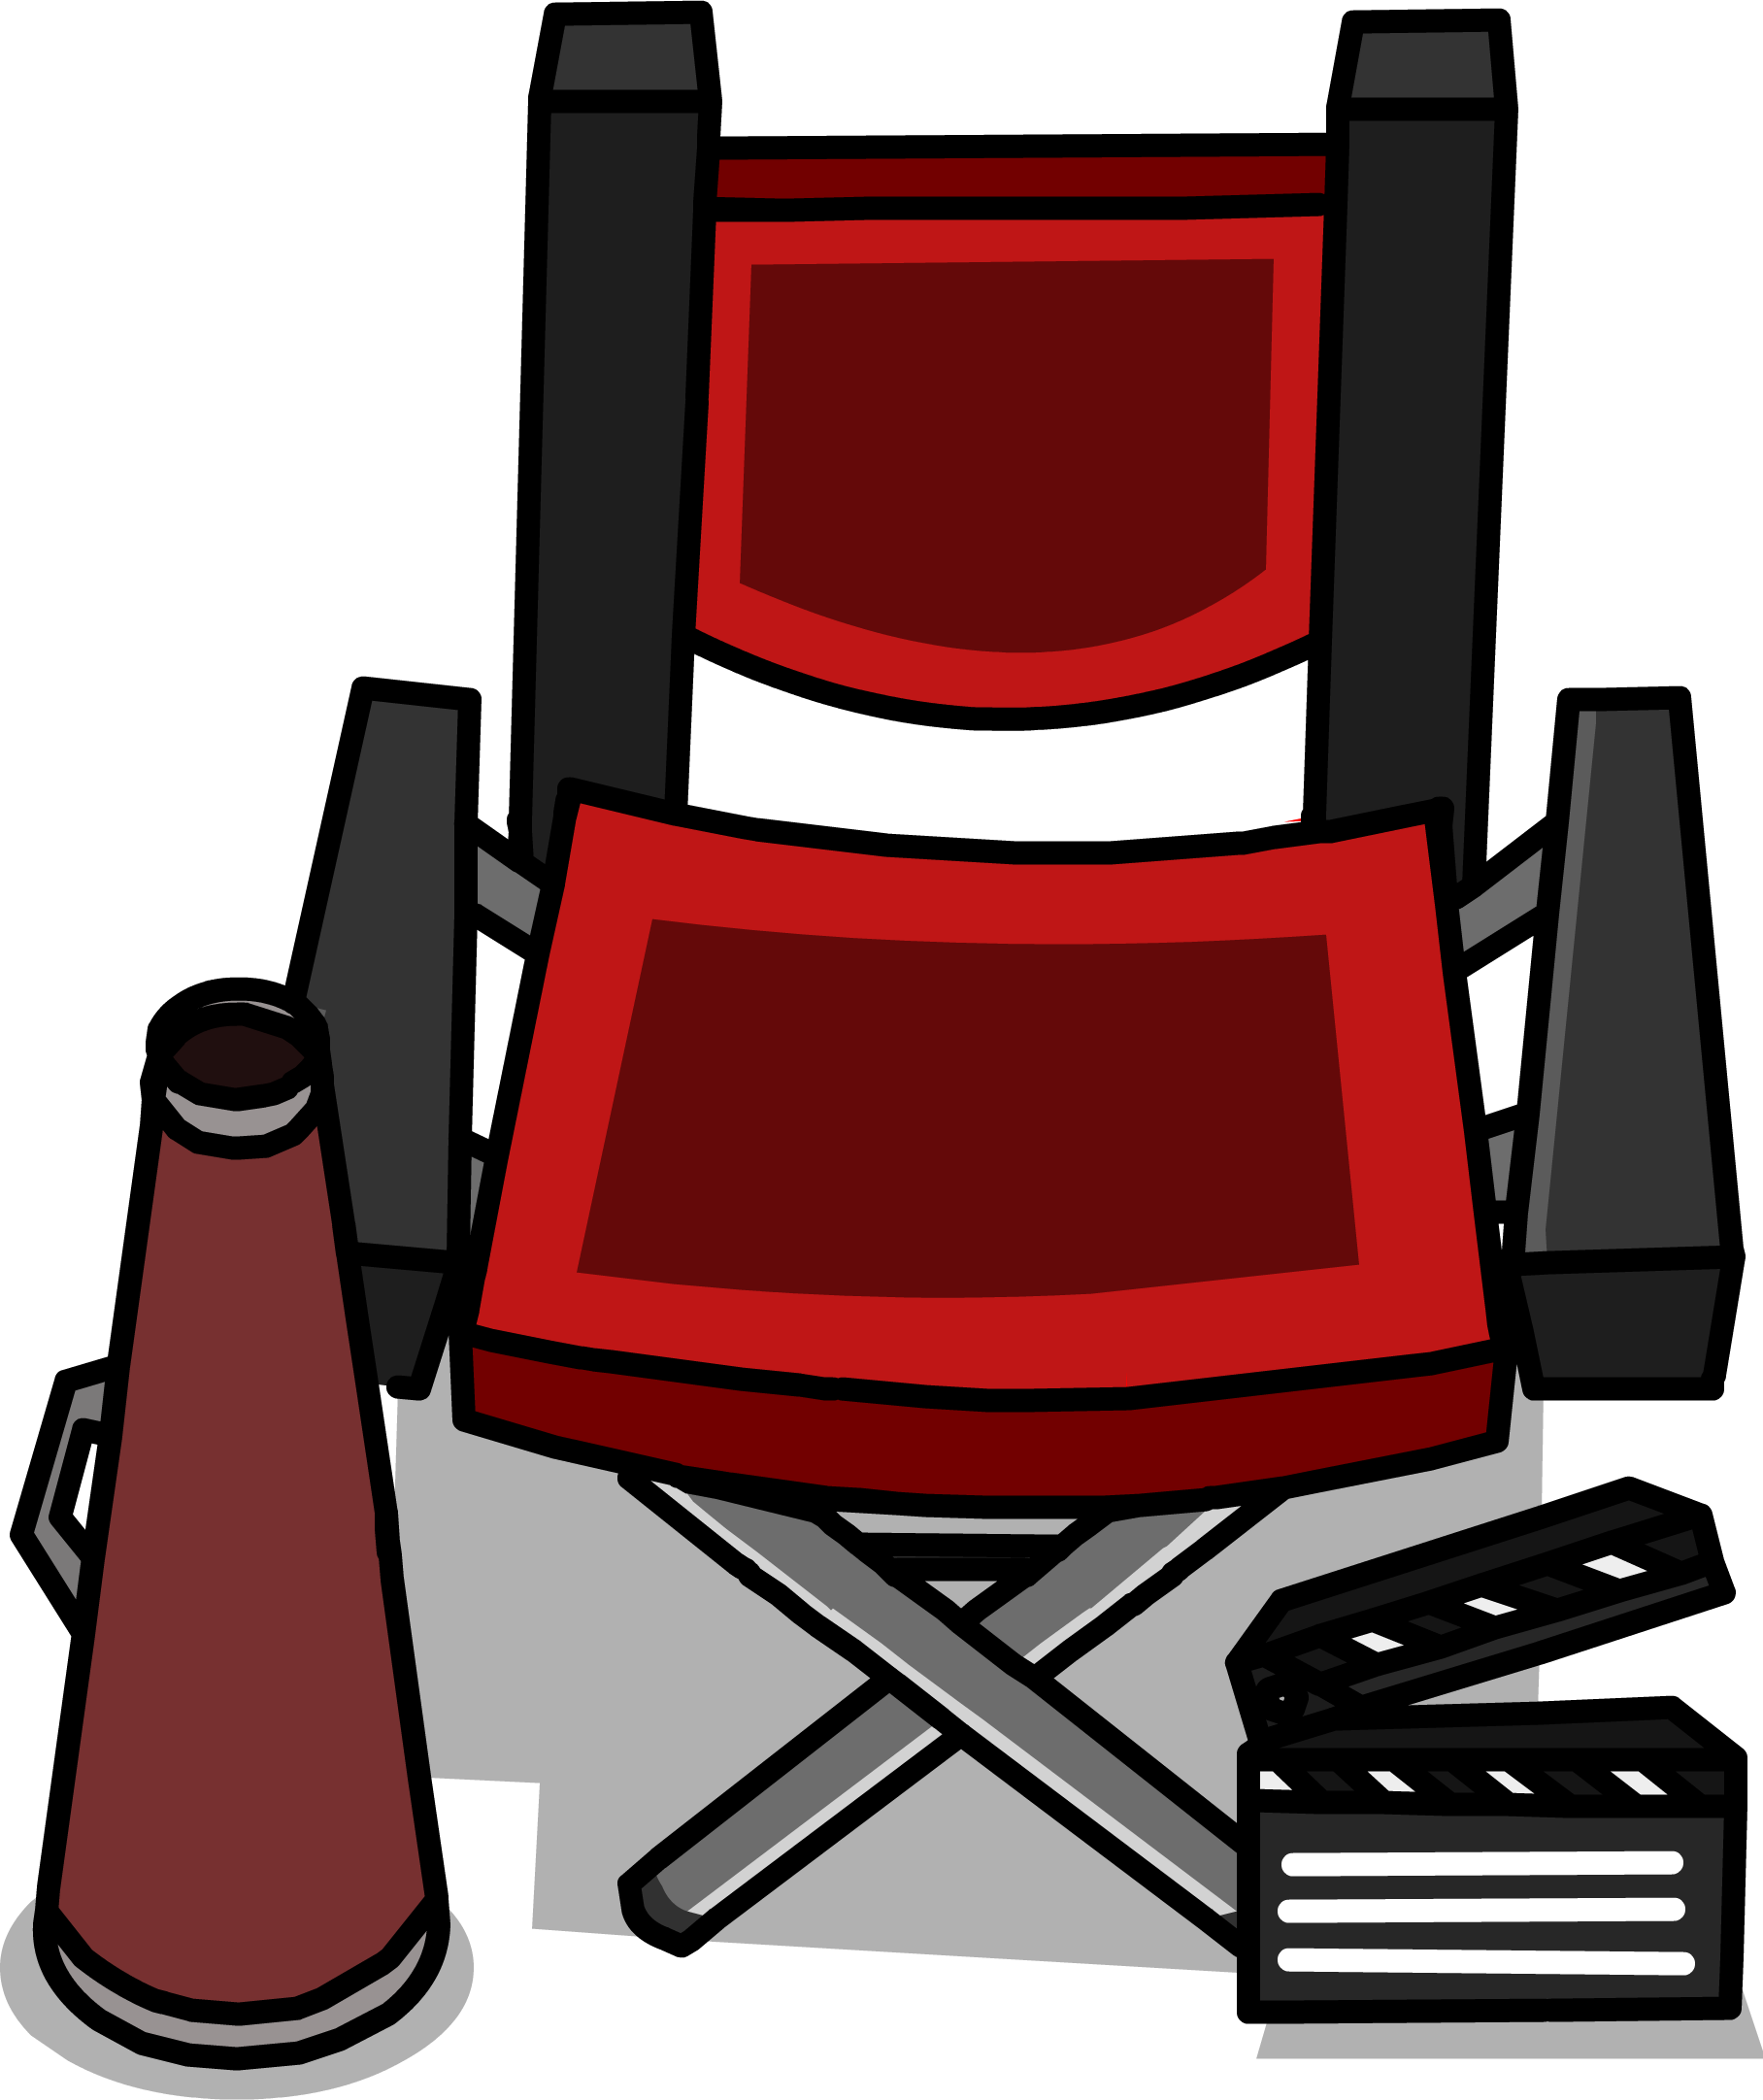 Directors chair png - Directors Chair Png 49